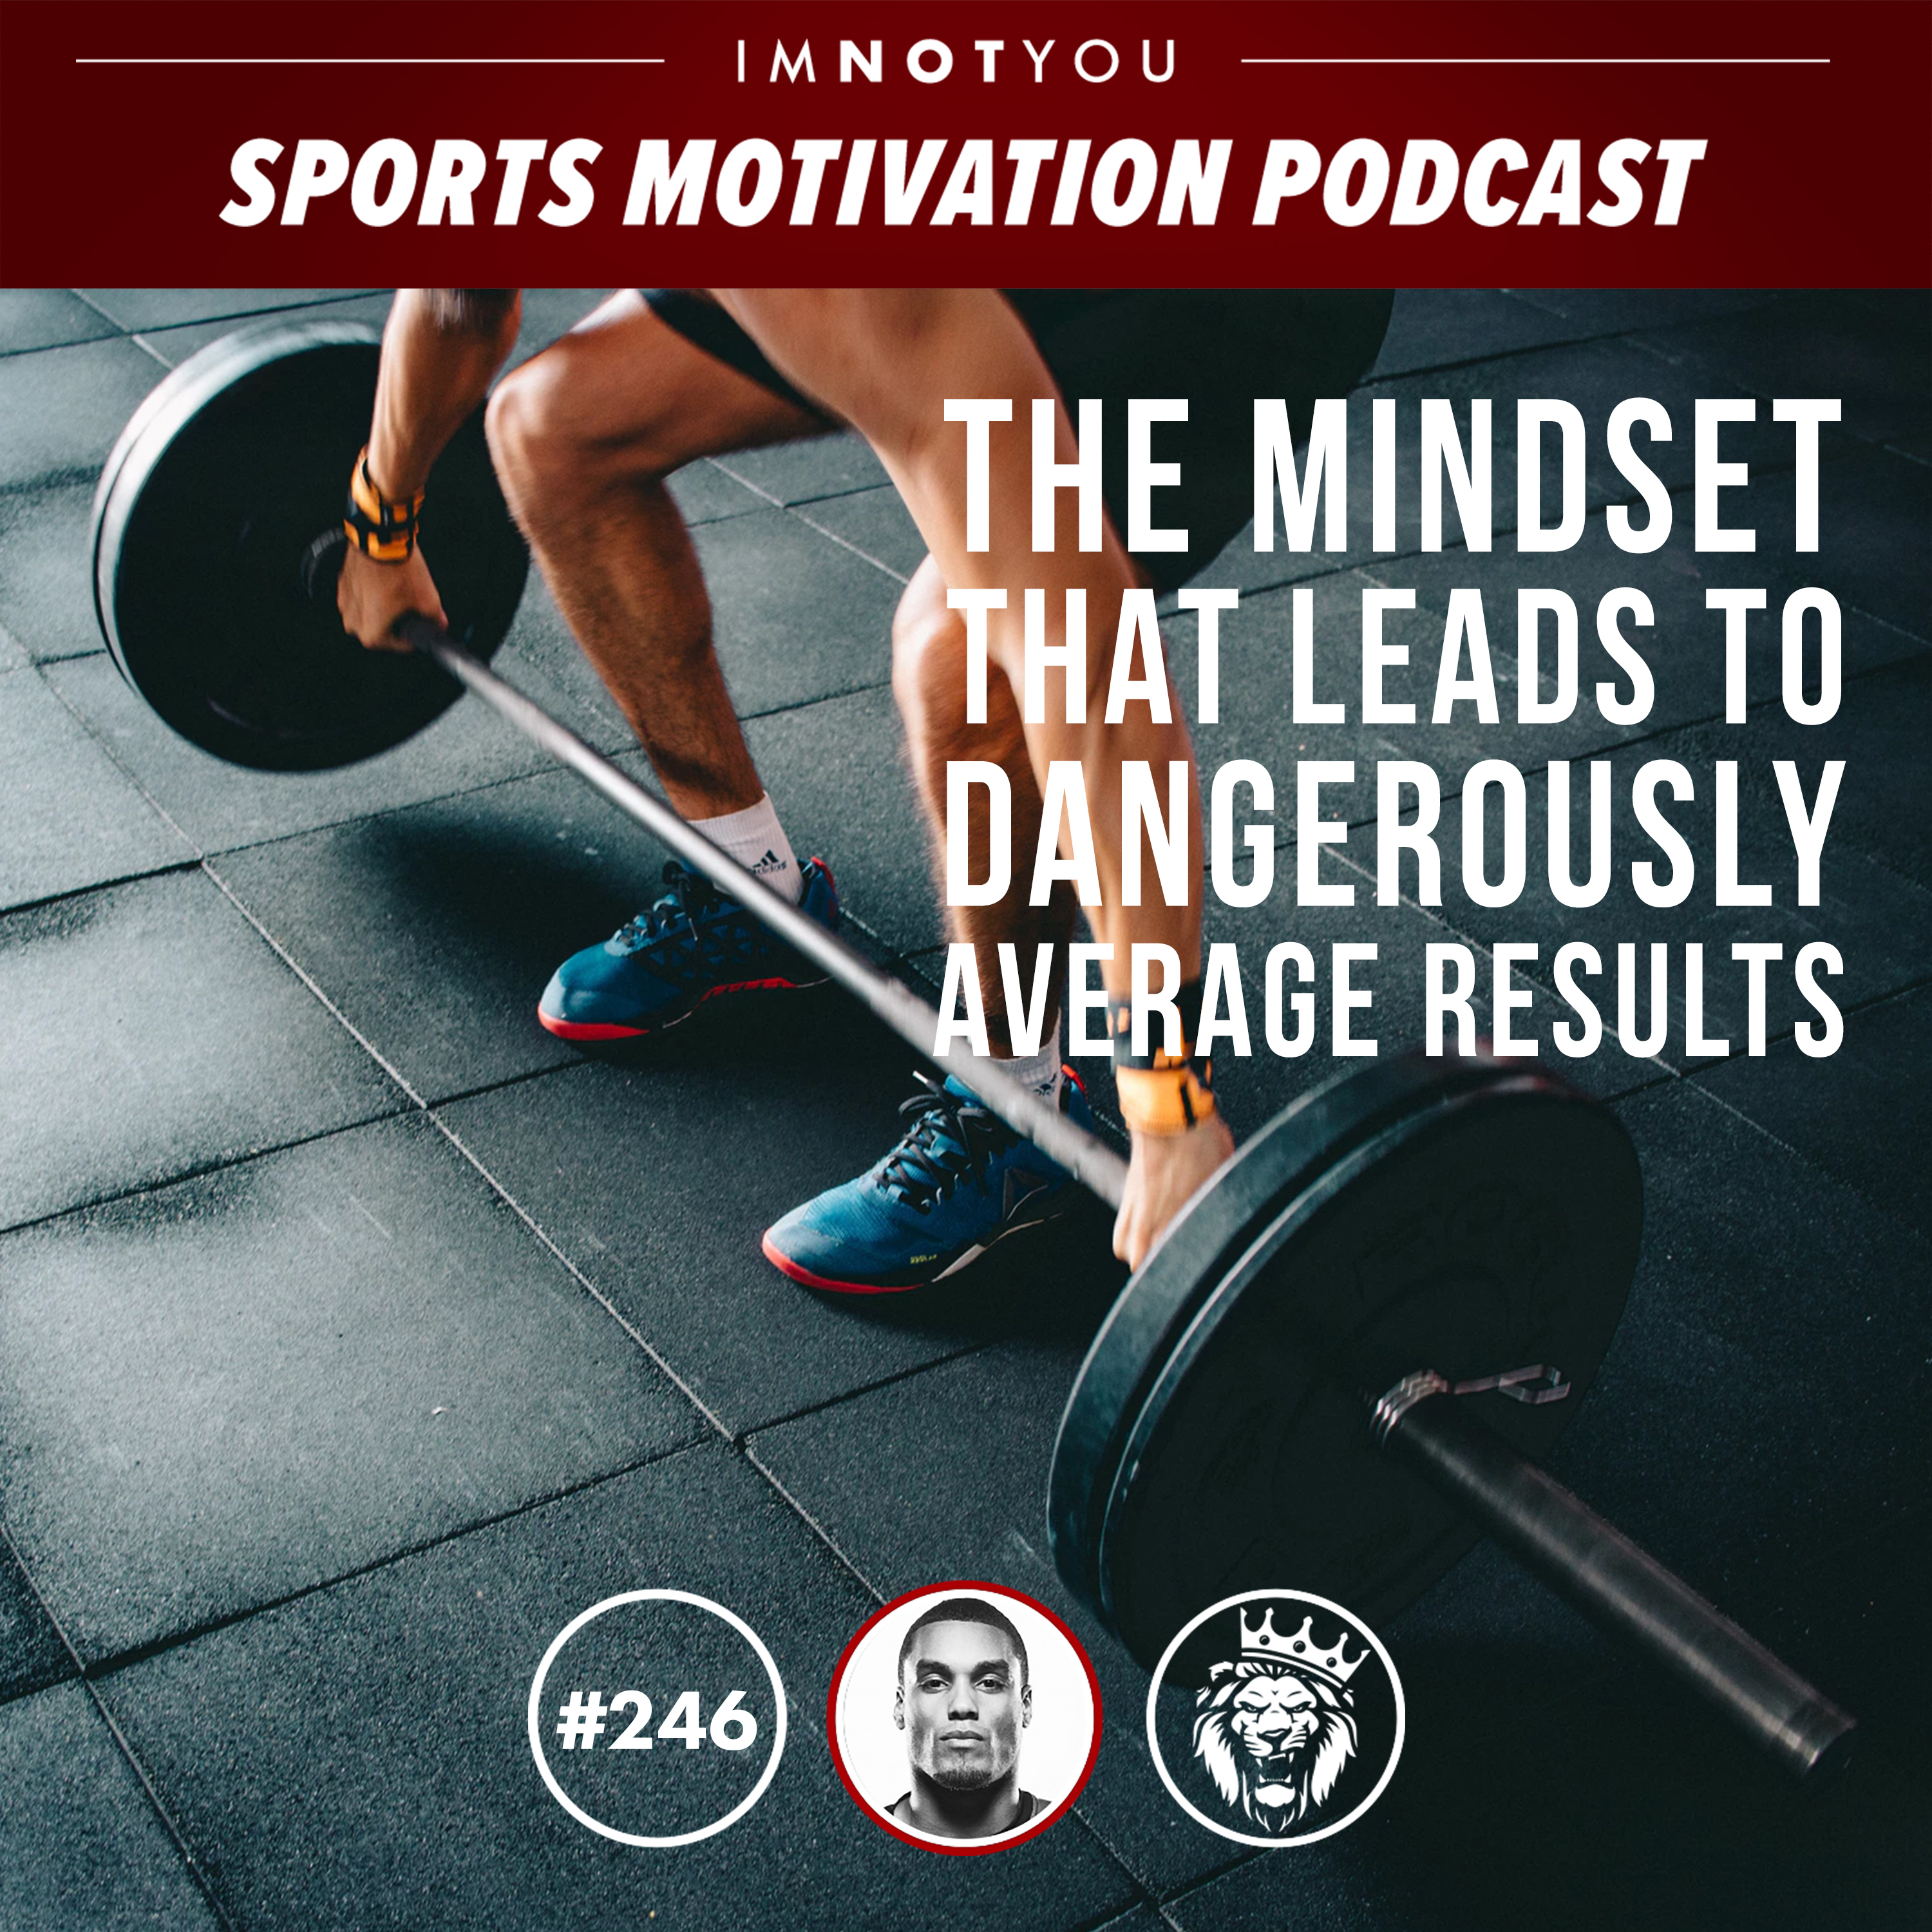 246: The Mindset that Leads to Dangerously Average Results